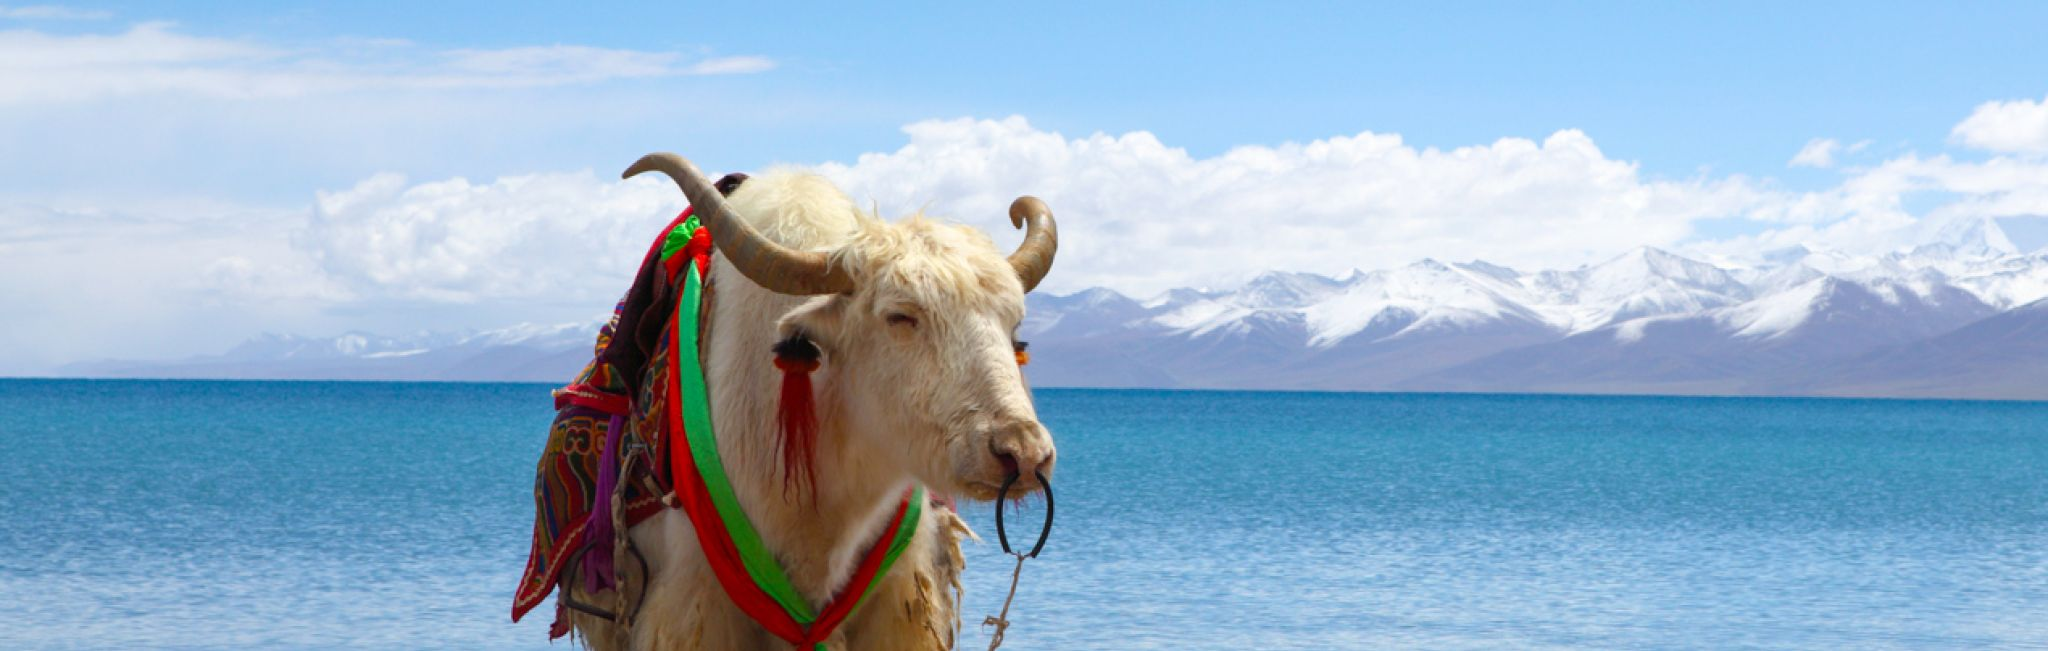 A yak by Namtso Lake, Tibet.